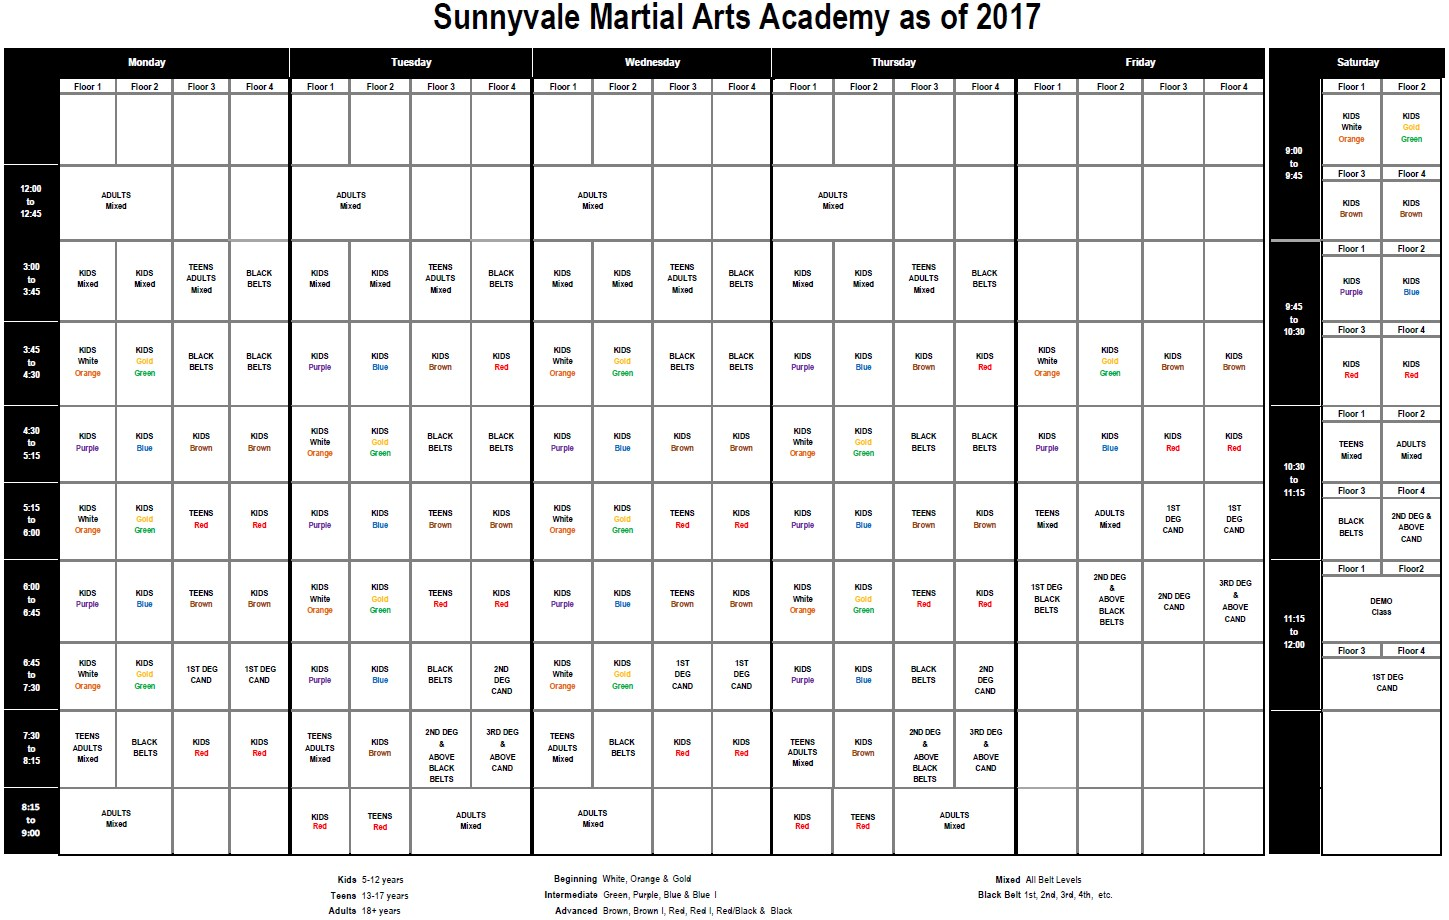 2017 Sunnyvale Martial Arts Academy Schedule